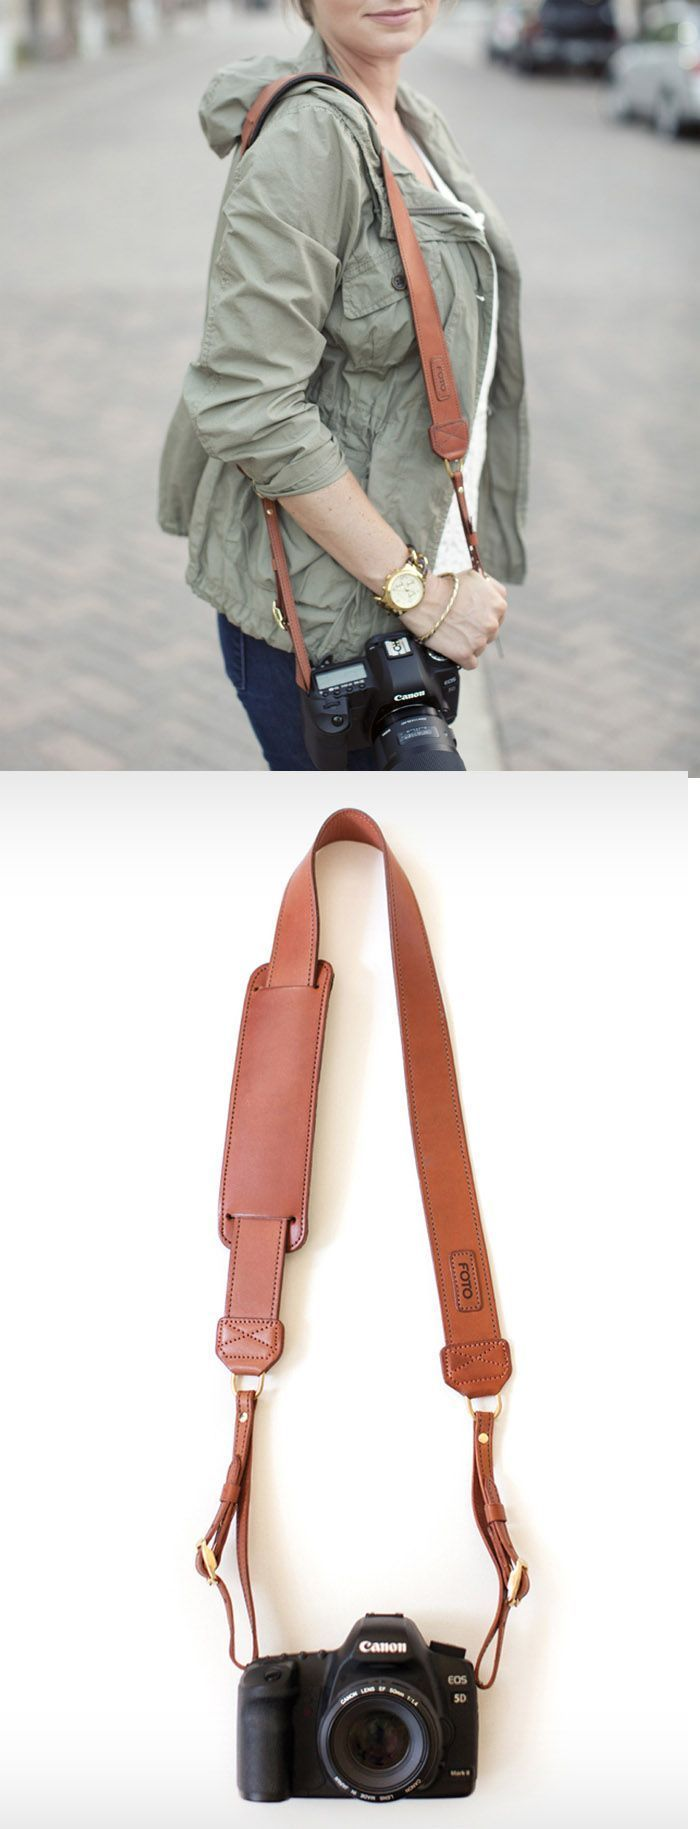 The James Fotostrap -  A Leather Camera Strap that you can add a custom monogram to on the shoulder pad.